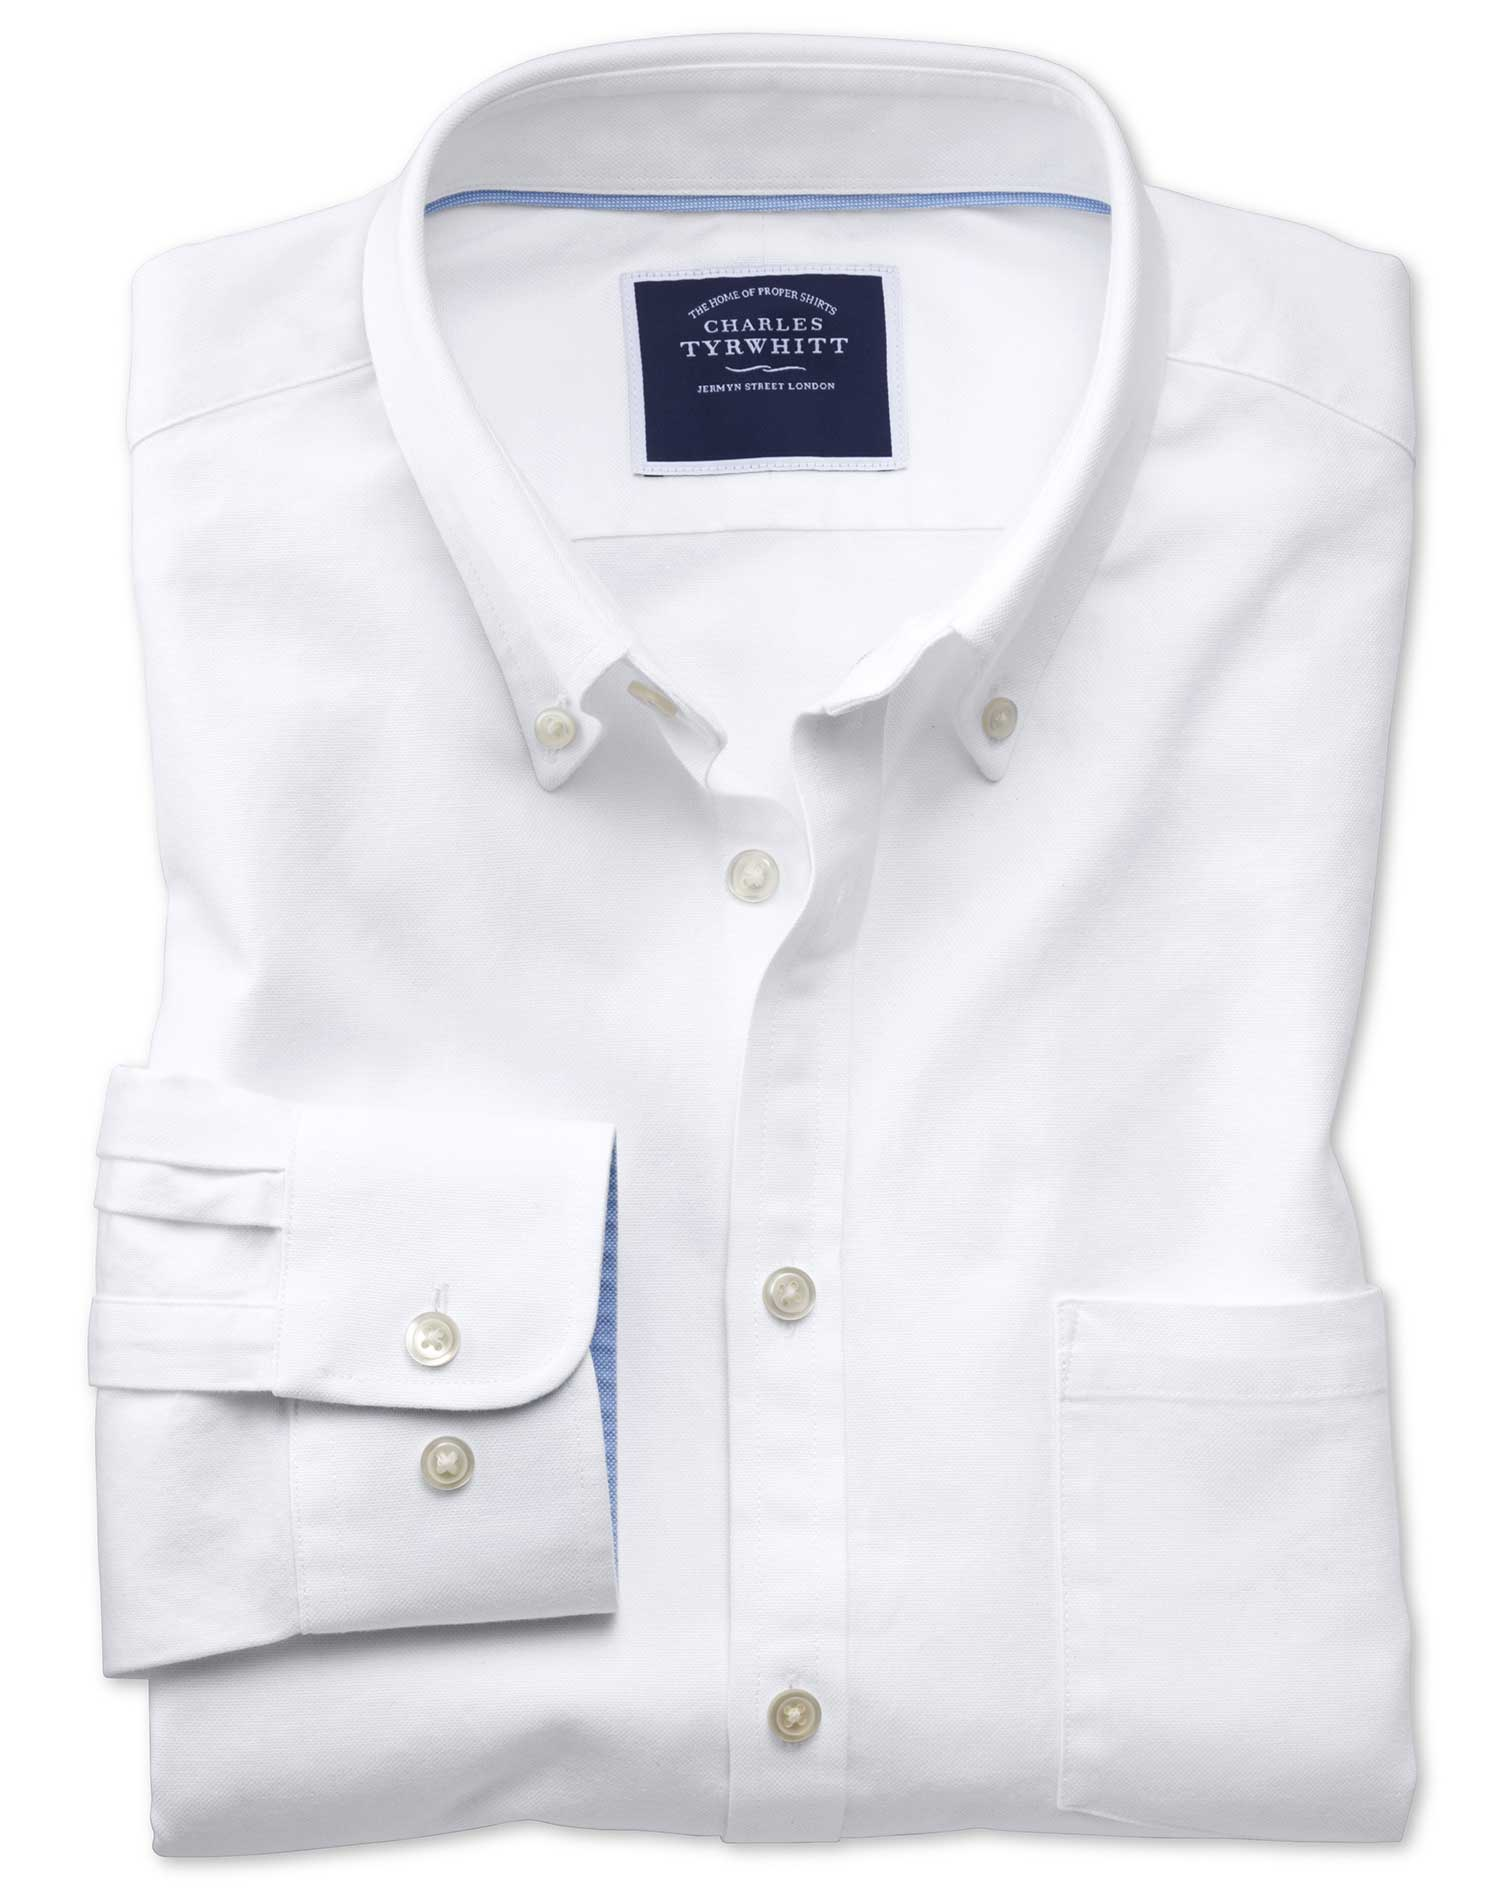 Extra Slim Fit White Washed Oxford Cotton Shirt Single Cuff Size XXL by Charles Tyrwhitt